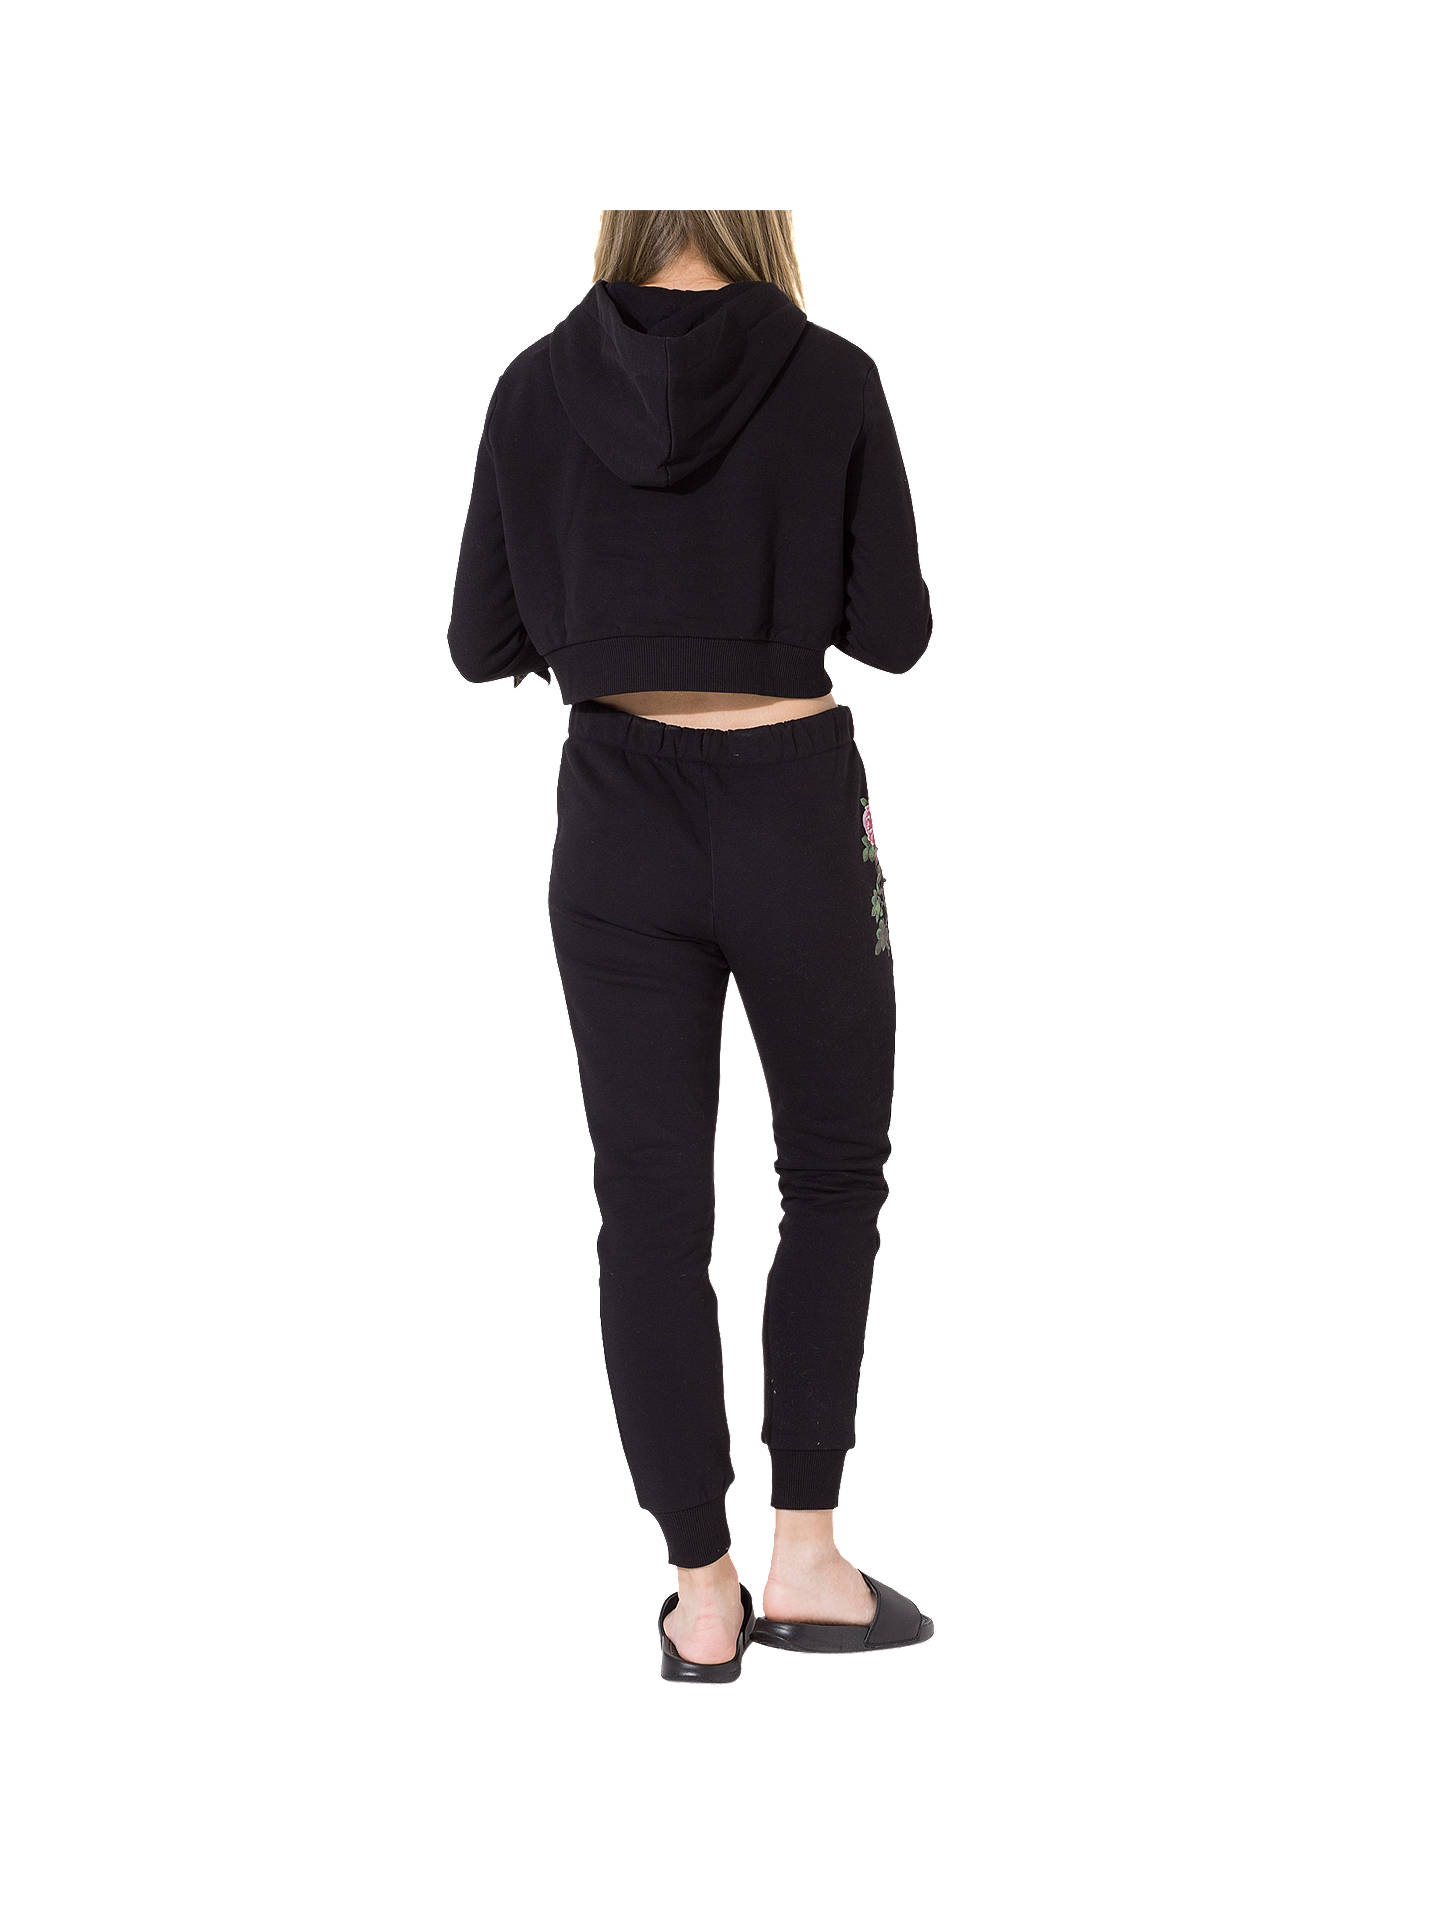 481f0188154 ... Buy Hype Girls' Butterfly Embroidered Crop Hoodie, Black, 7-8 years  Online